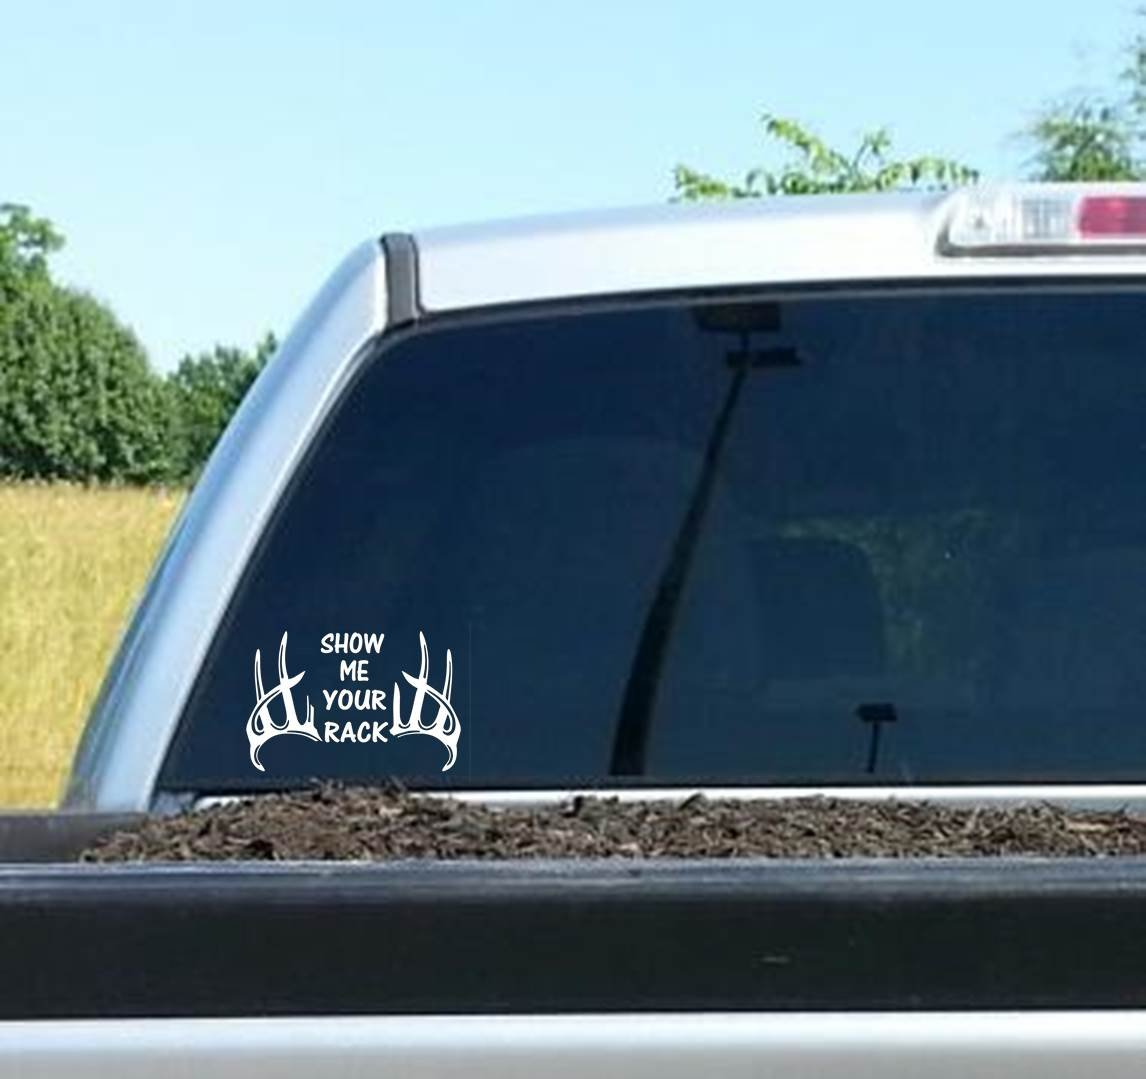 Amazoncom Show Me Your Rack Archery Deer Hunting Bowhunting - Rear window hunting decals for trucksamazoncom truck suv whitetail deer hunting rear window graphic